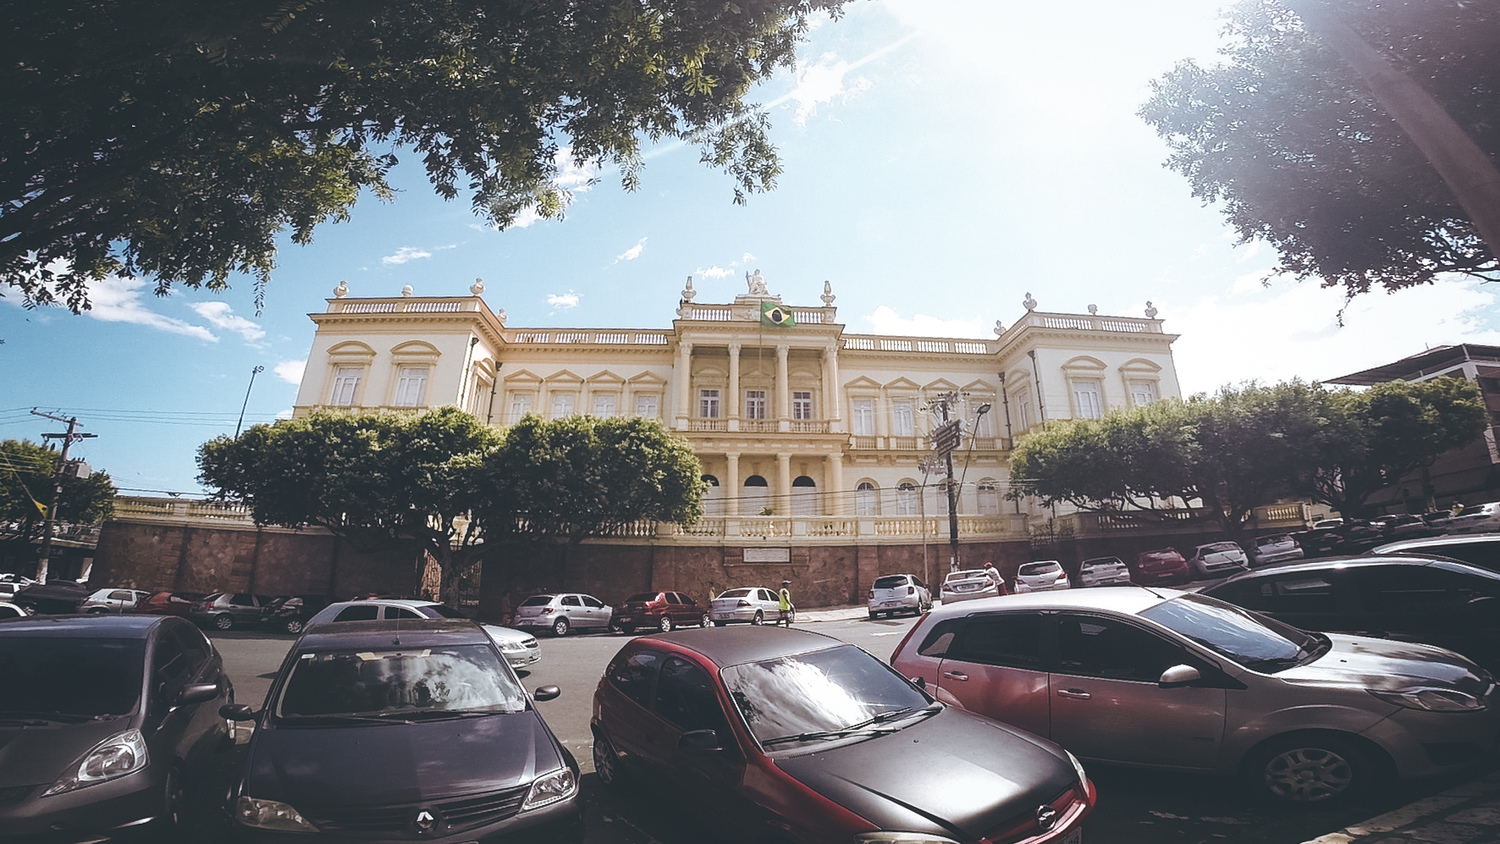 A beautiful ornate building along a street we traveled.